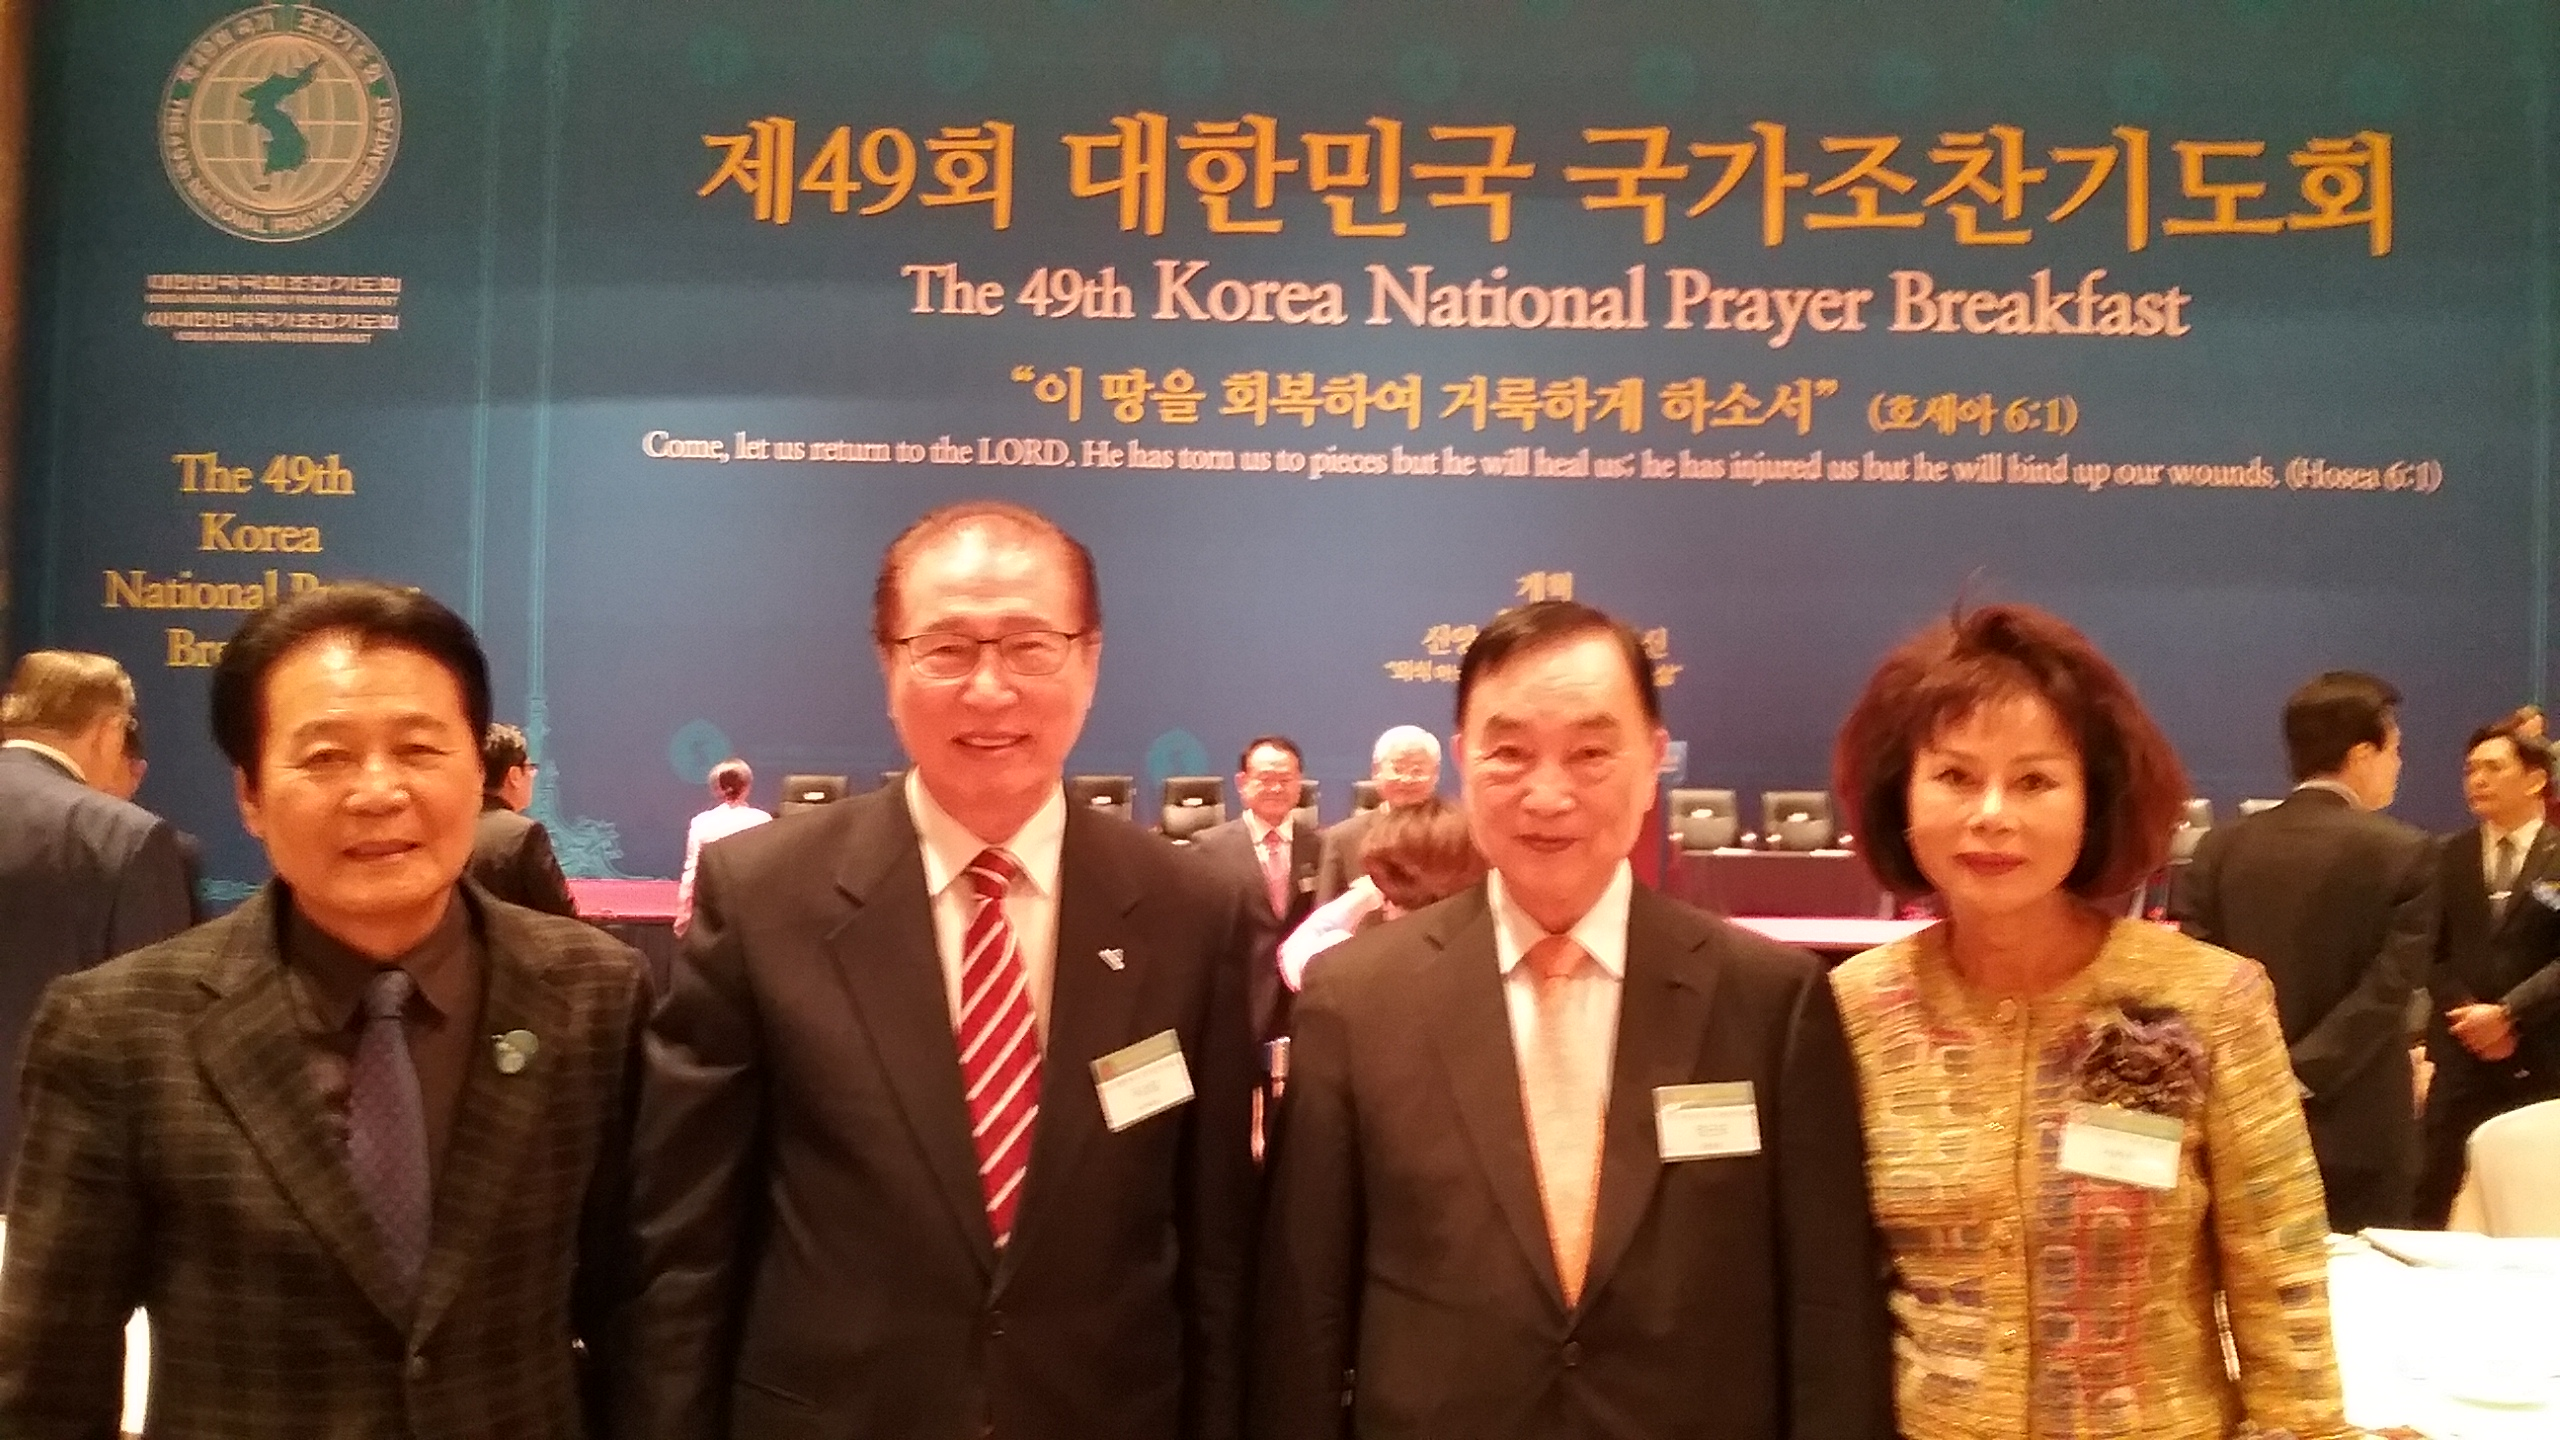 49th Korea National Prayer Breakfast